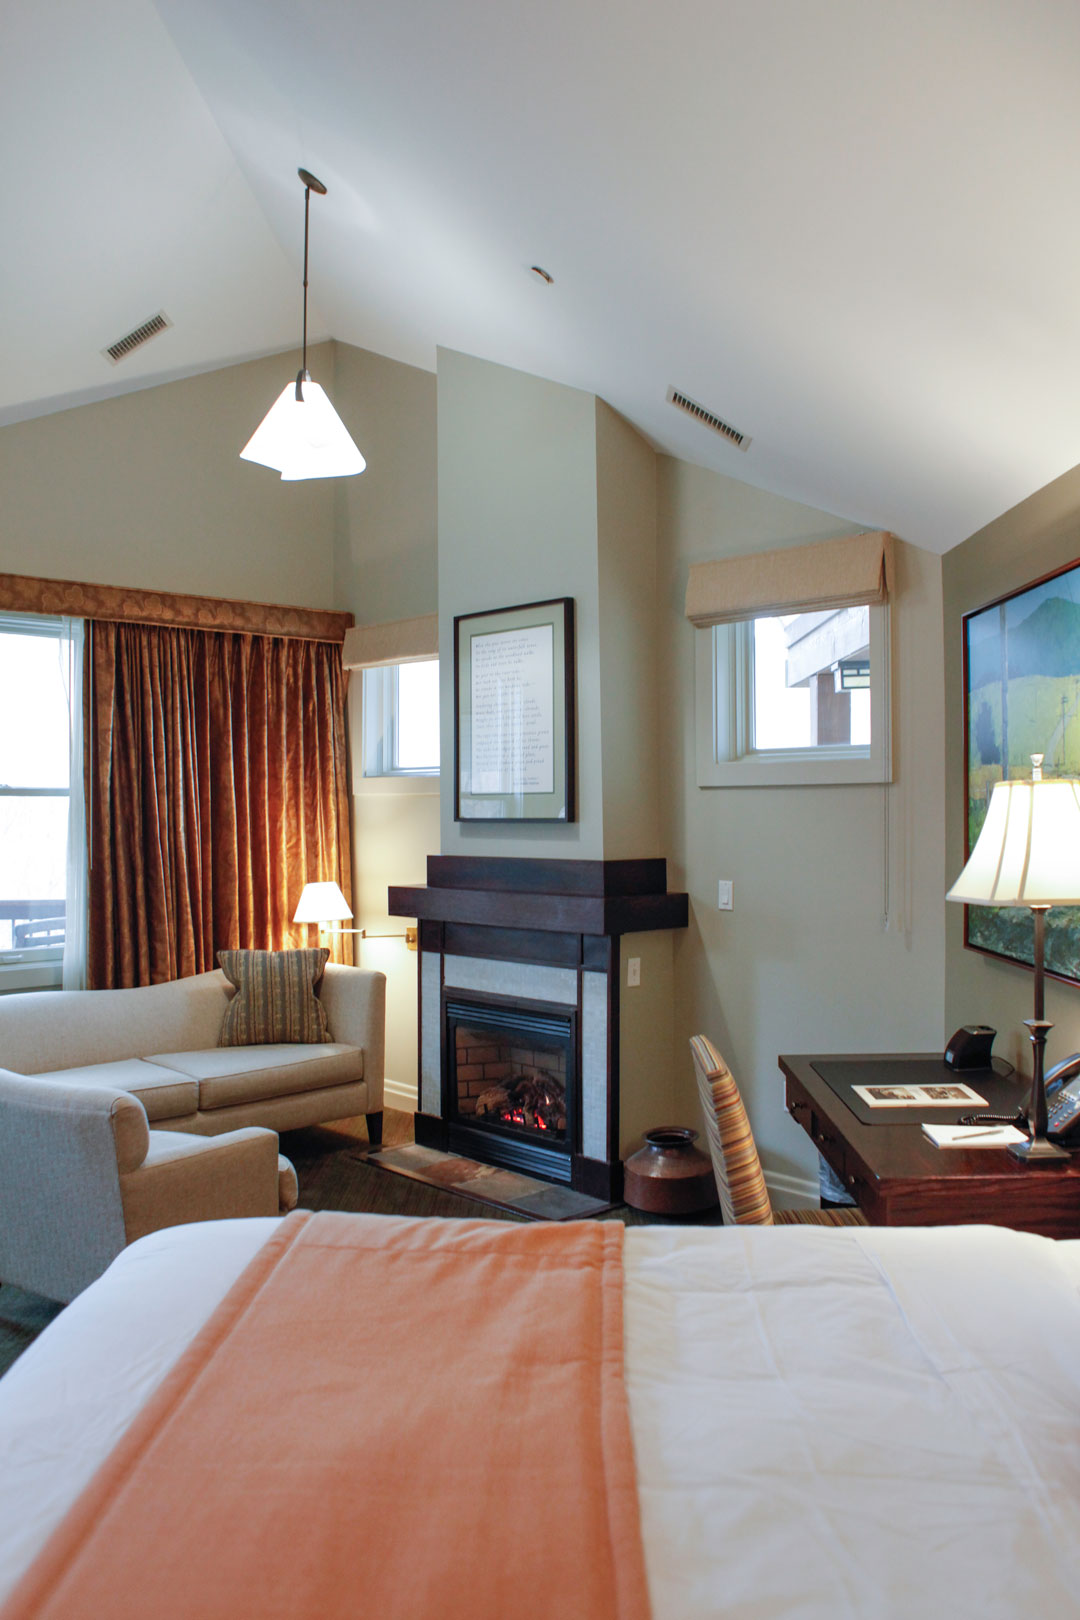 Emerson Resort & Spa Catskill Travel Guide